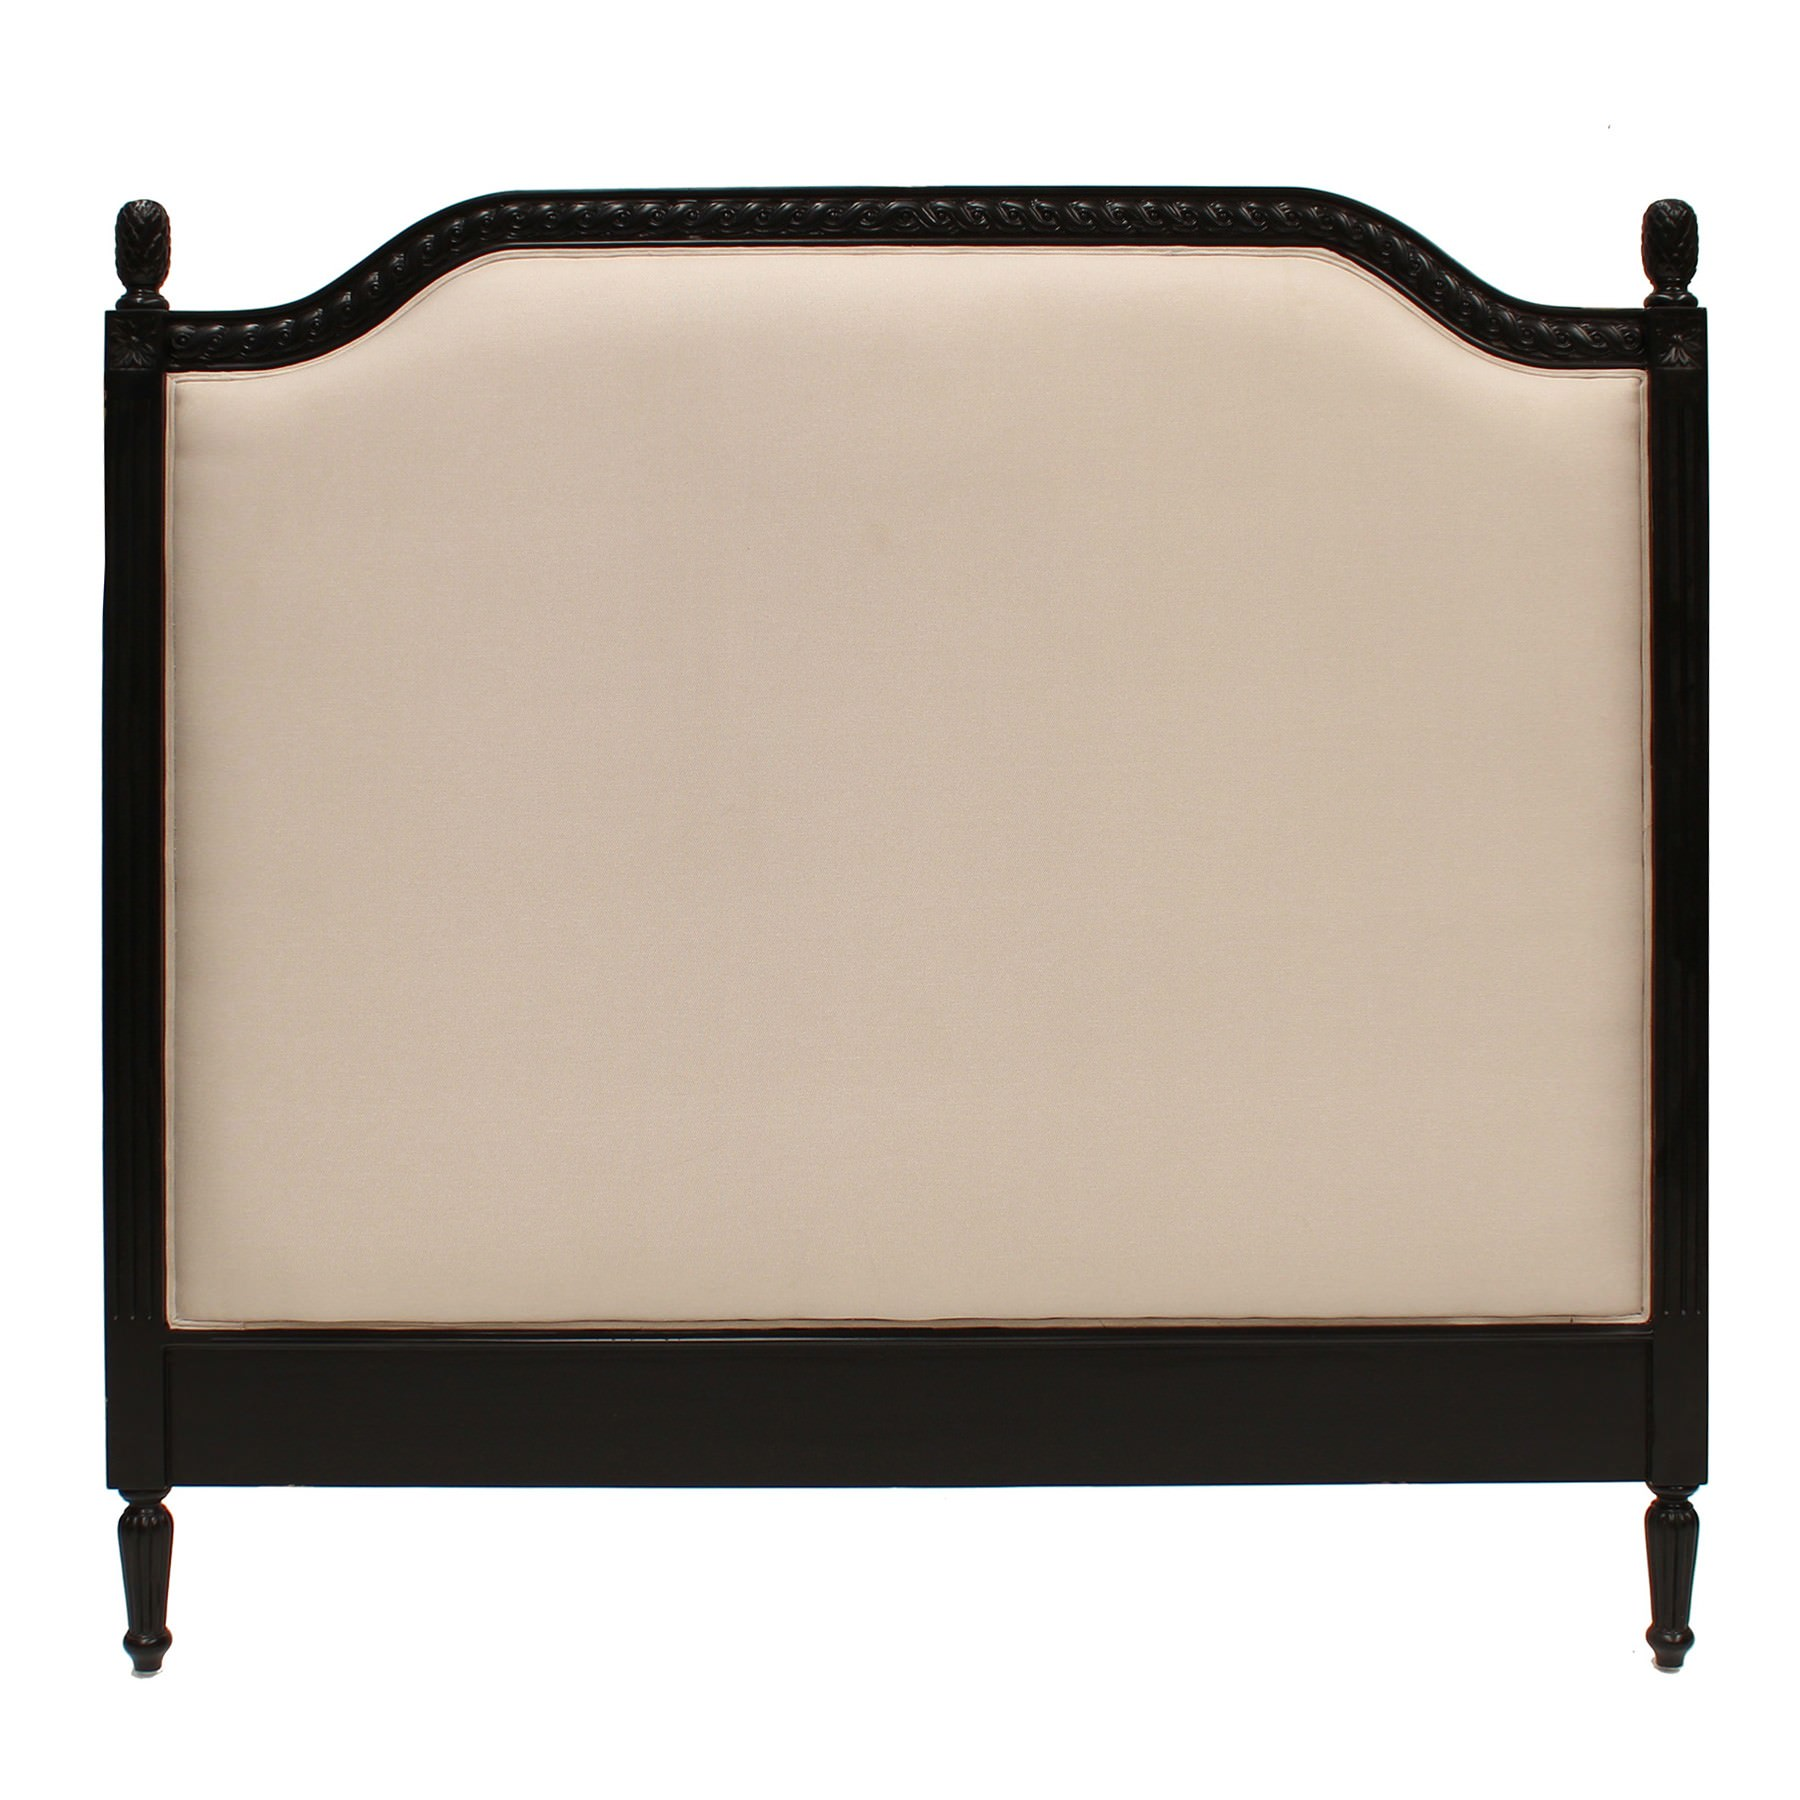 Lapalisse Hand Crafted Upholstered  Mahogany Timber Bed Headboard, Queen, Black